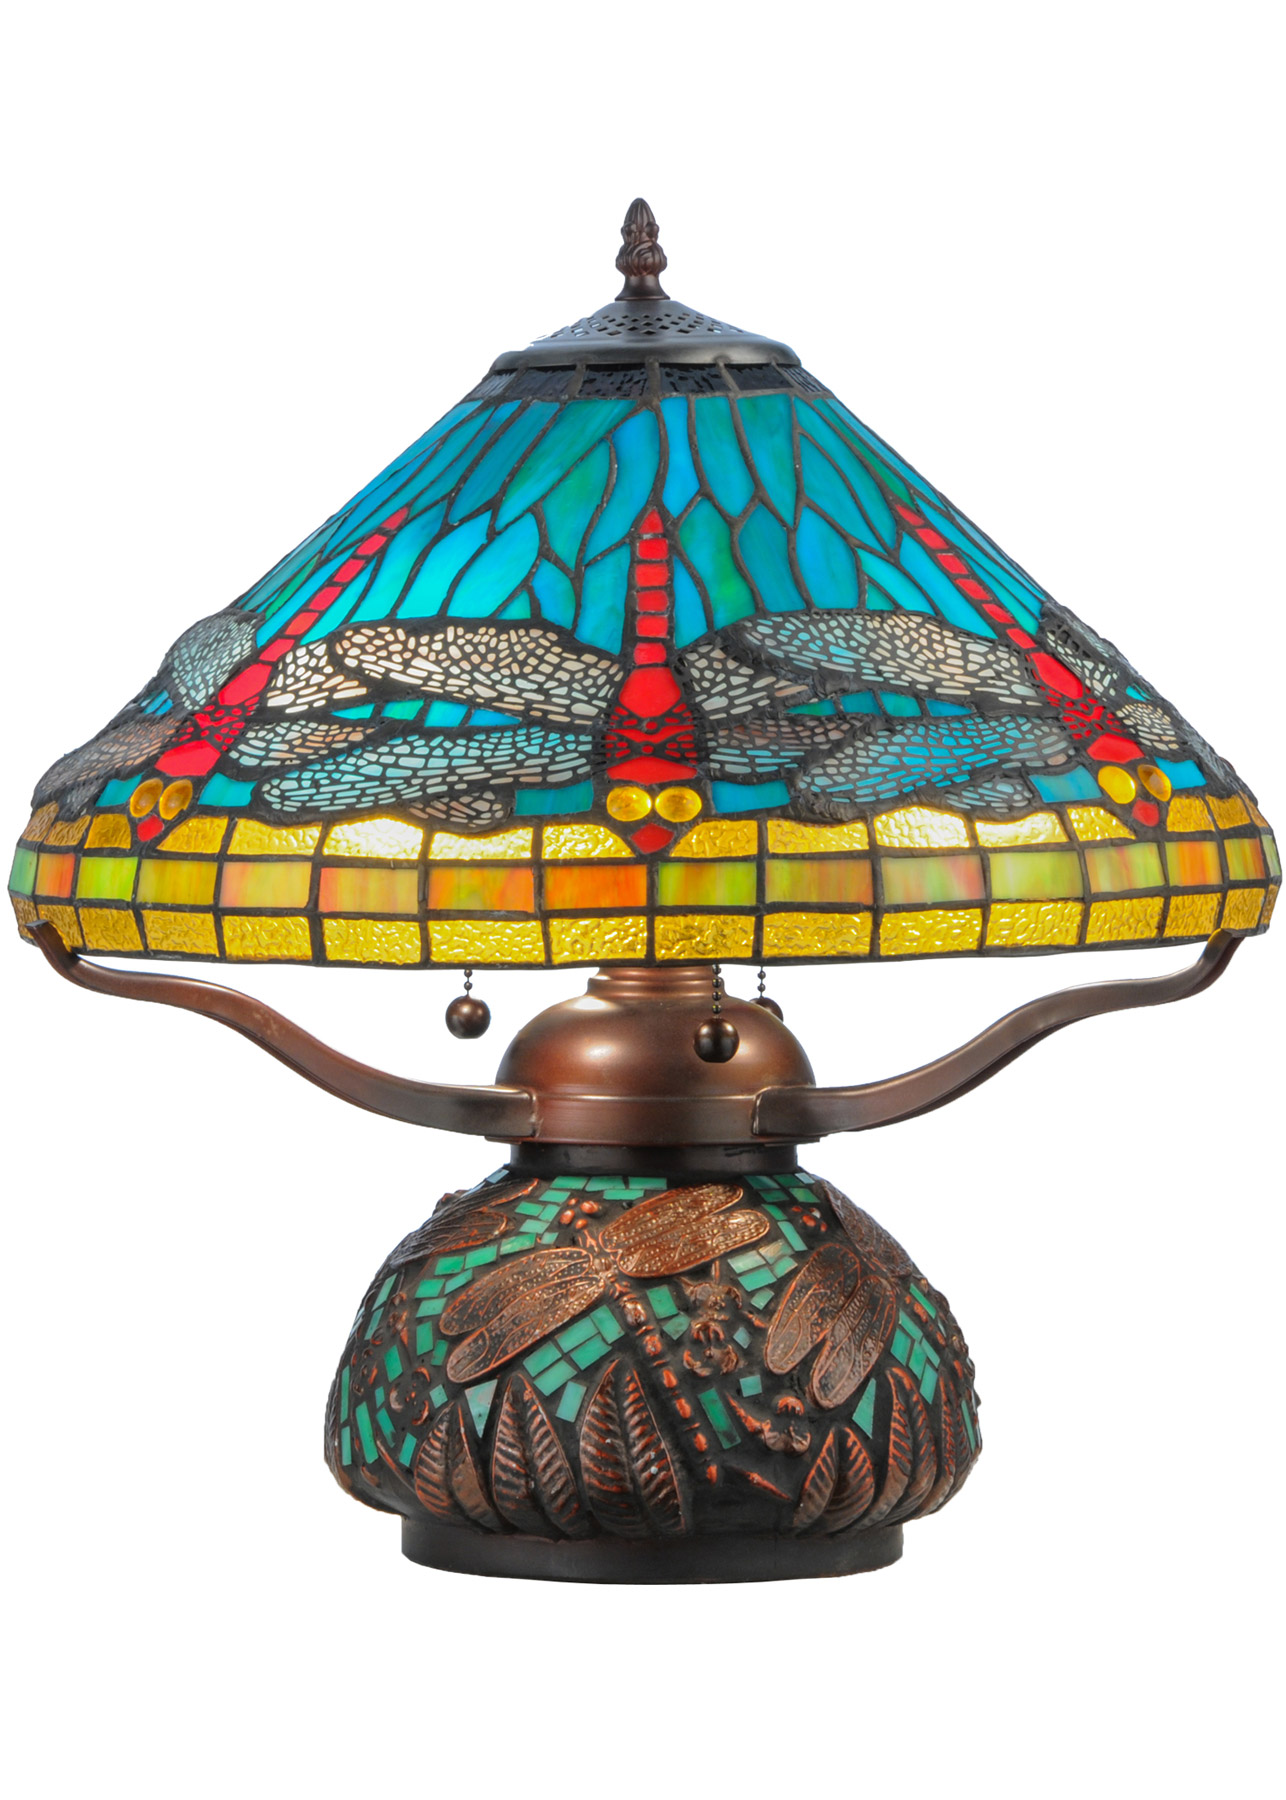 Meyda 27159 Tiffany Dragonfly Mosaic Accent Lamp